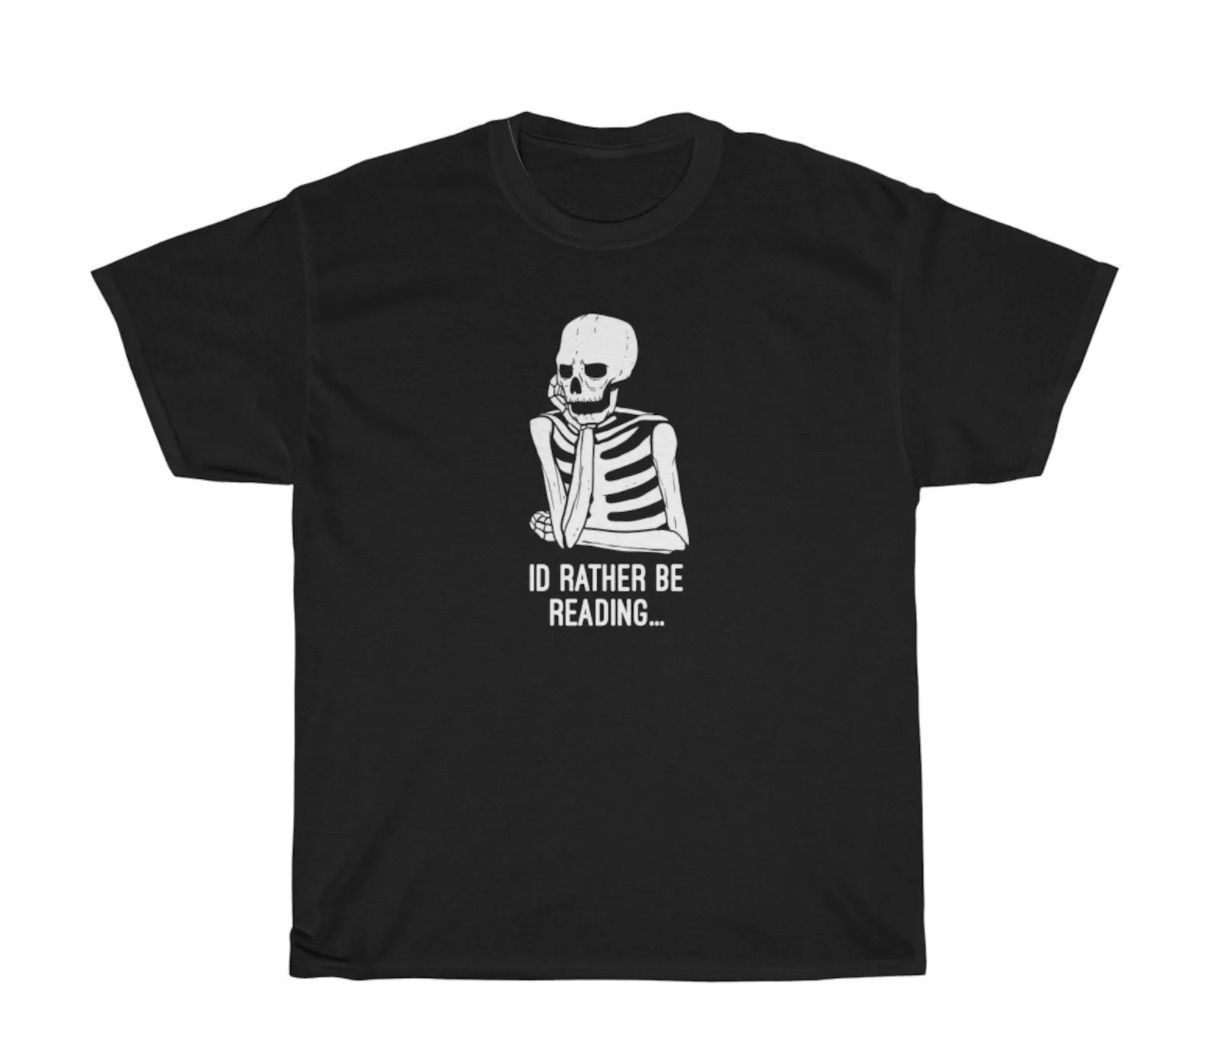 Black t-shirt with a white skeleton in the center. Beneath the skeleton are the words I'd Rather Be Reading.